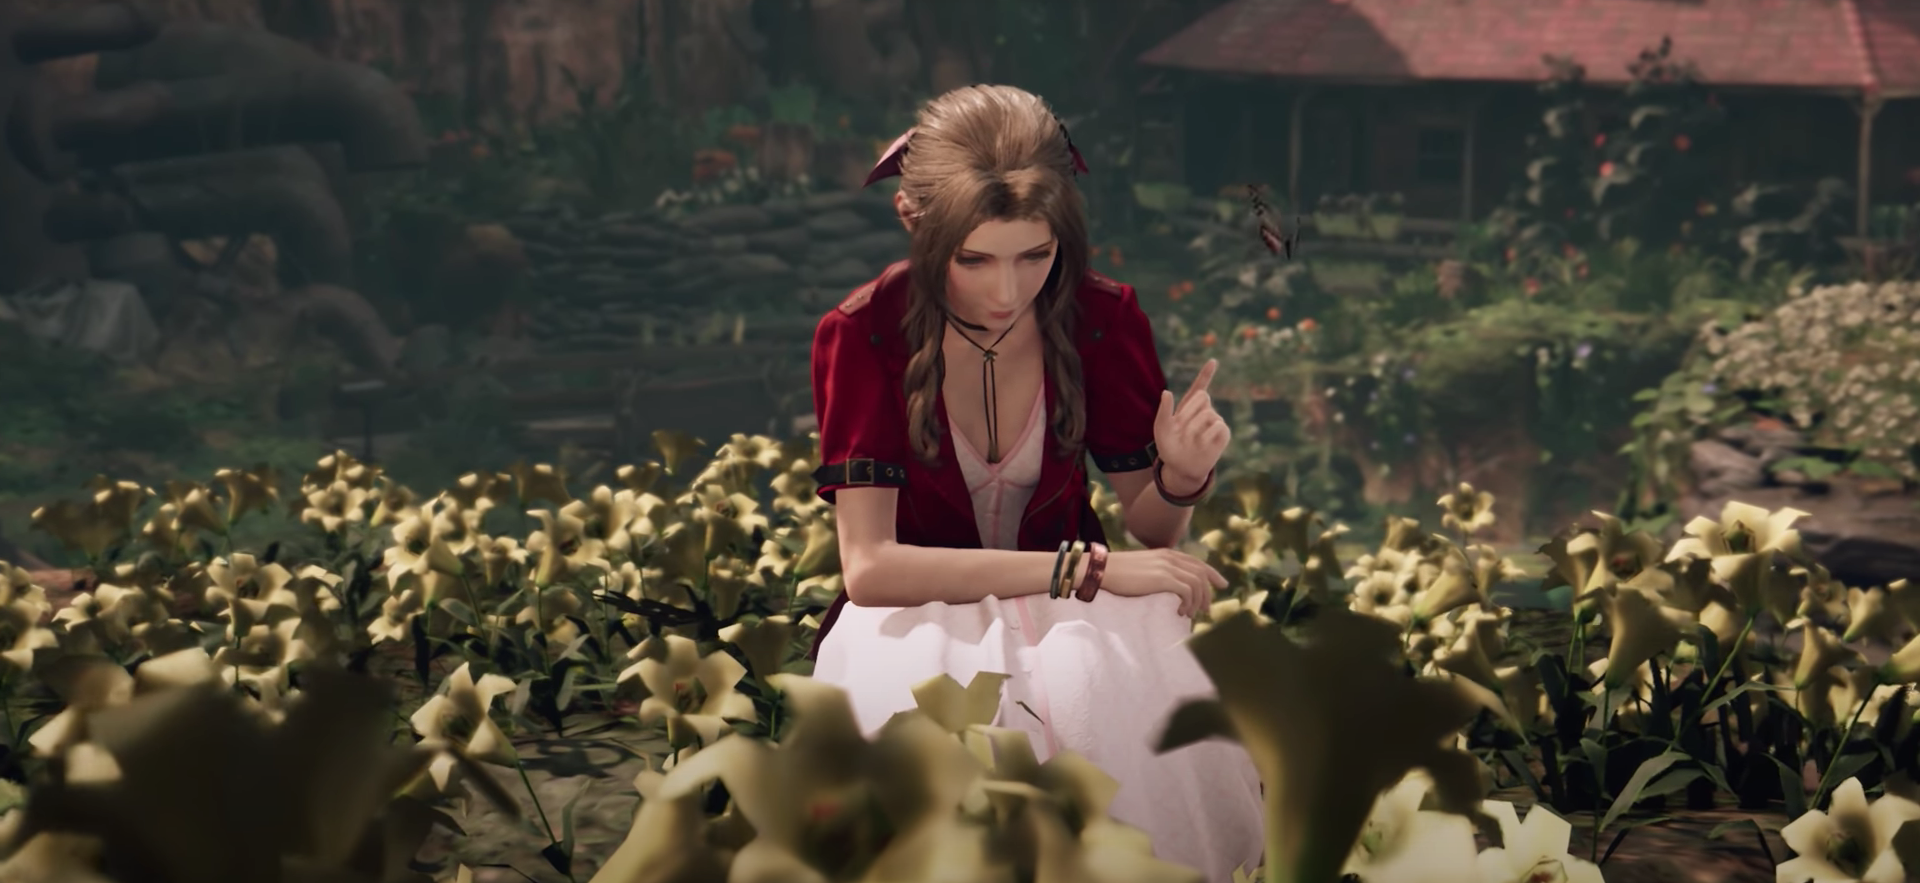 Aerith's Flower Texture Issues